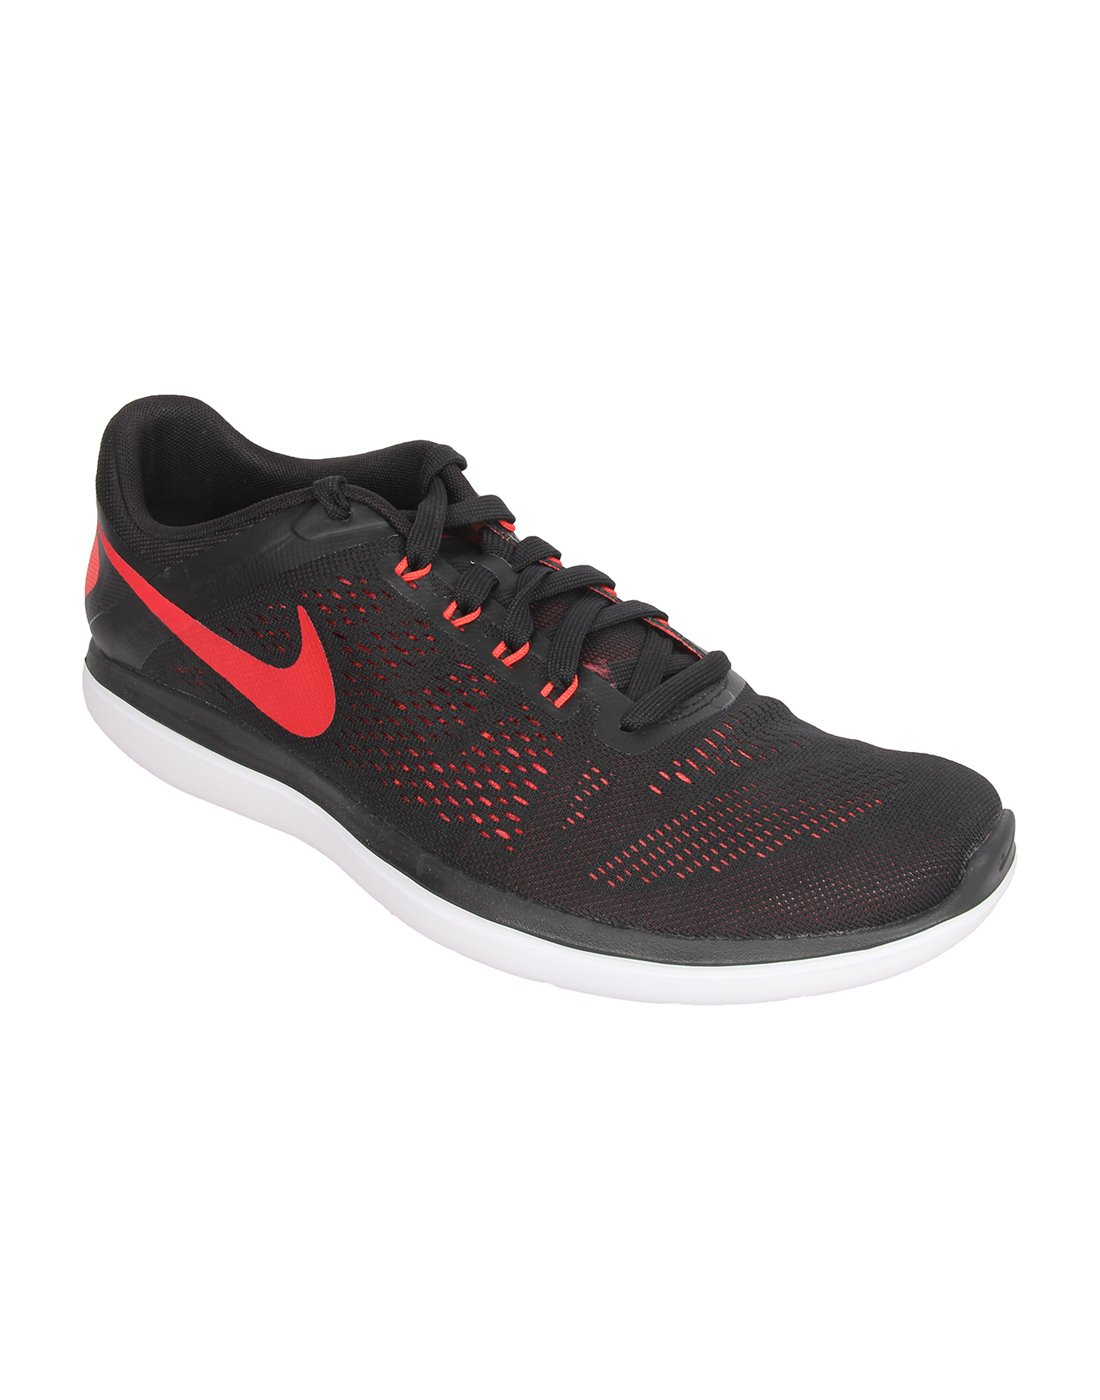 NIKE Men's Flex 2014 RN Running Shoe B01CITM11Q 9 D(M) US|Black/University Red/Ember Glow/White